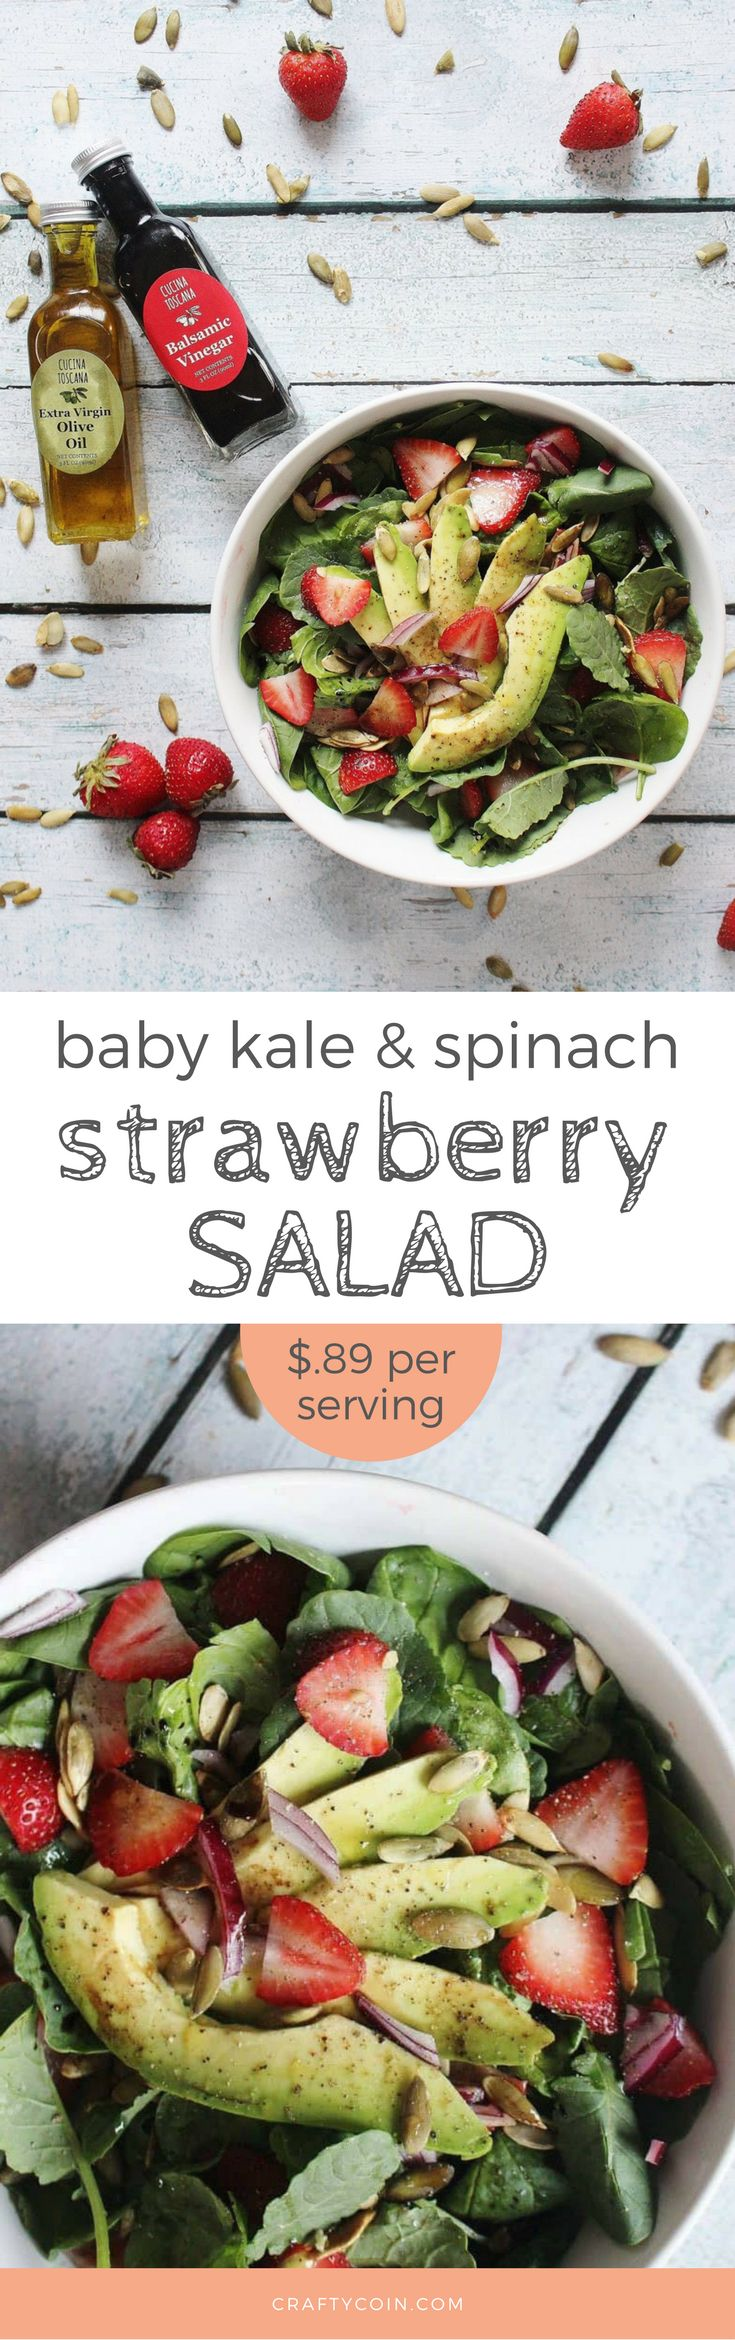 This quick and healthy Baby Kale and Strawberry Spinach salad is perfect for a light summer dish! Enjoy it as a side or add your favorite protein (chicken and steak are great additions!) to make it a full meal.